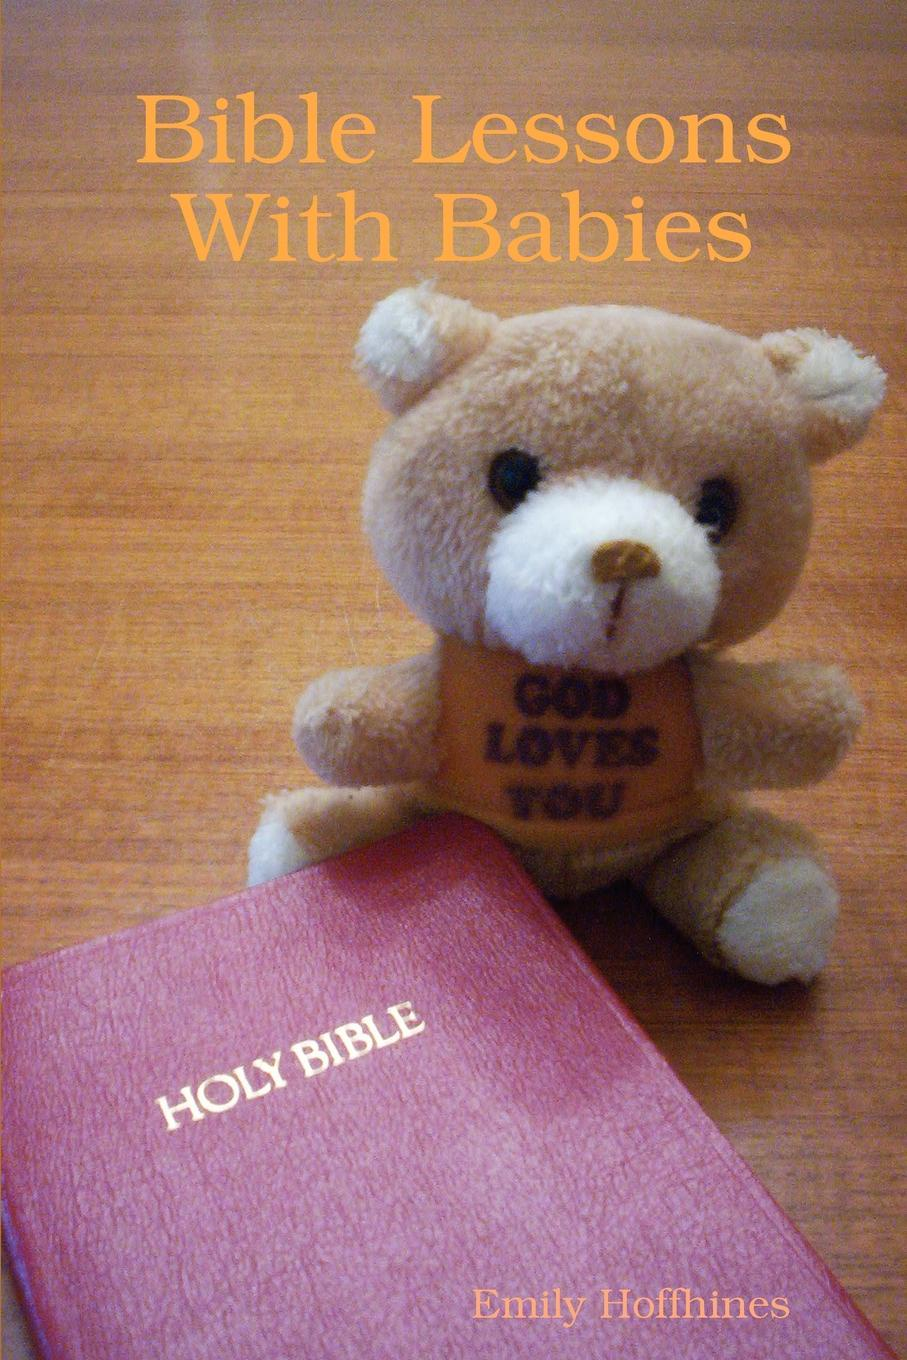 Emily Hoffhines Bible Lessons With Babies grow and develop our baby encyclopedia of the first year russian edition book for new parents